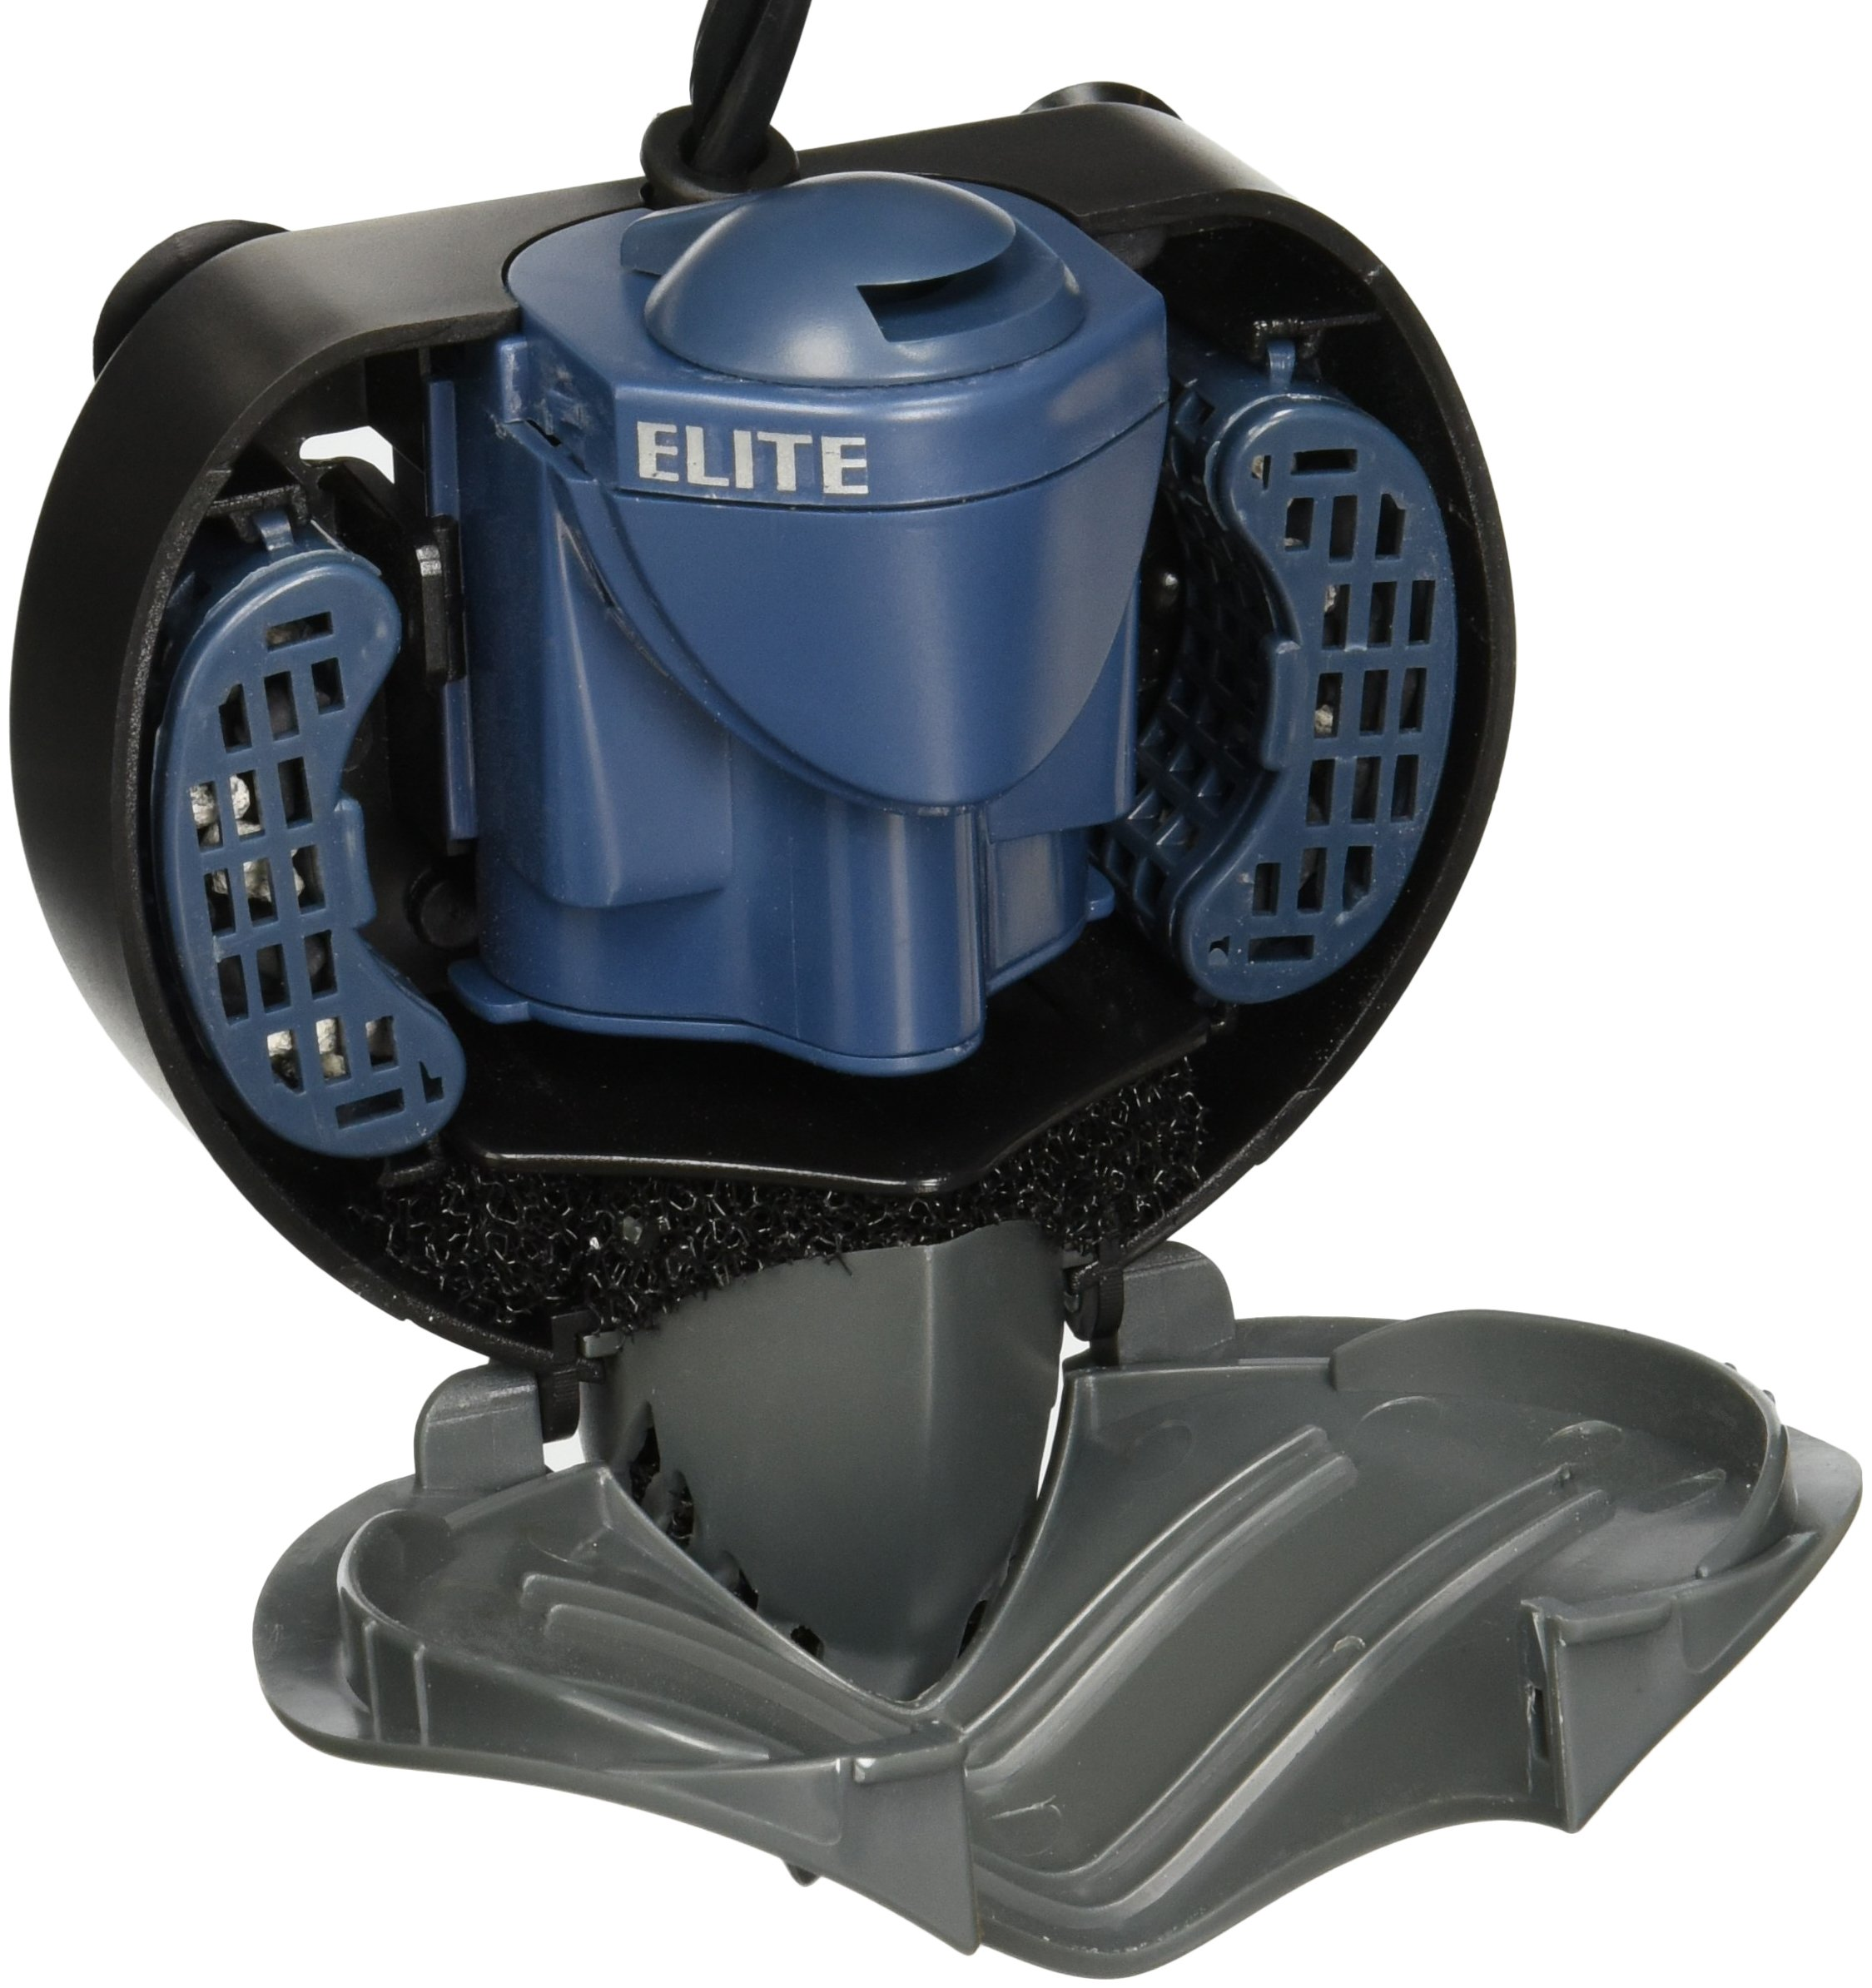 Hagen Elite Stingray 5 Underwater Aquarium Filter